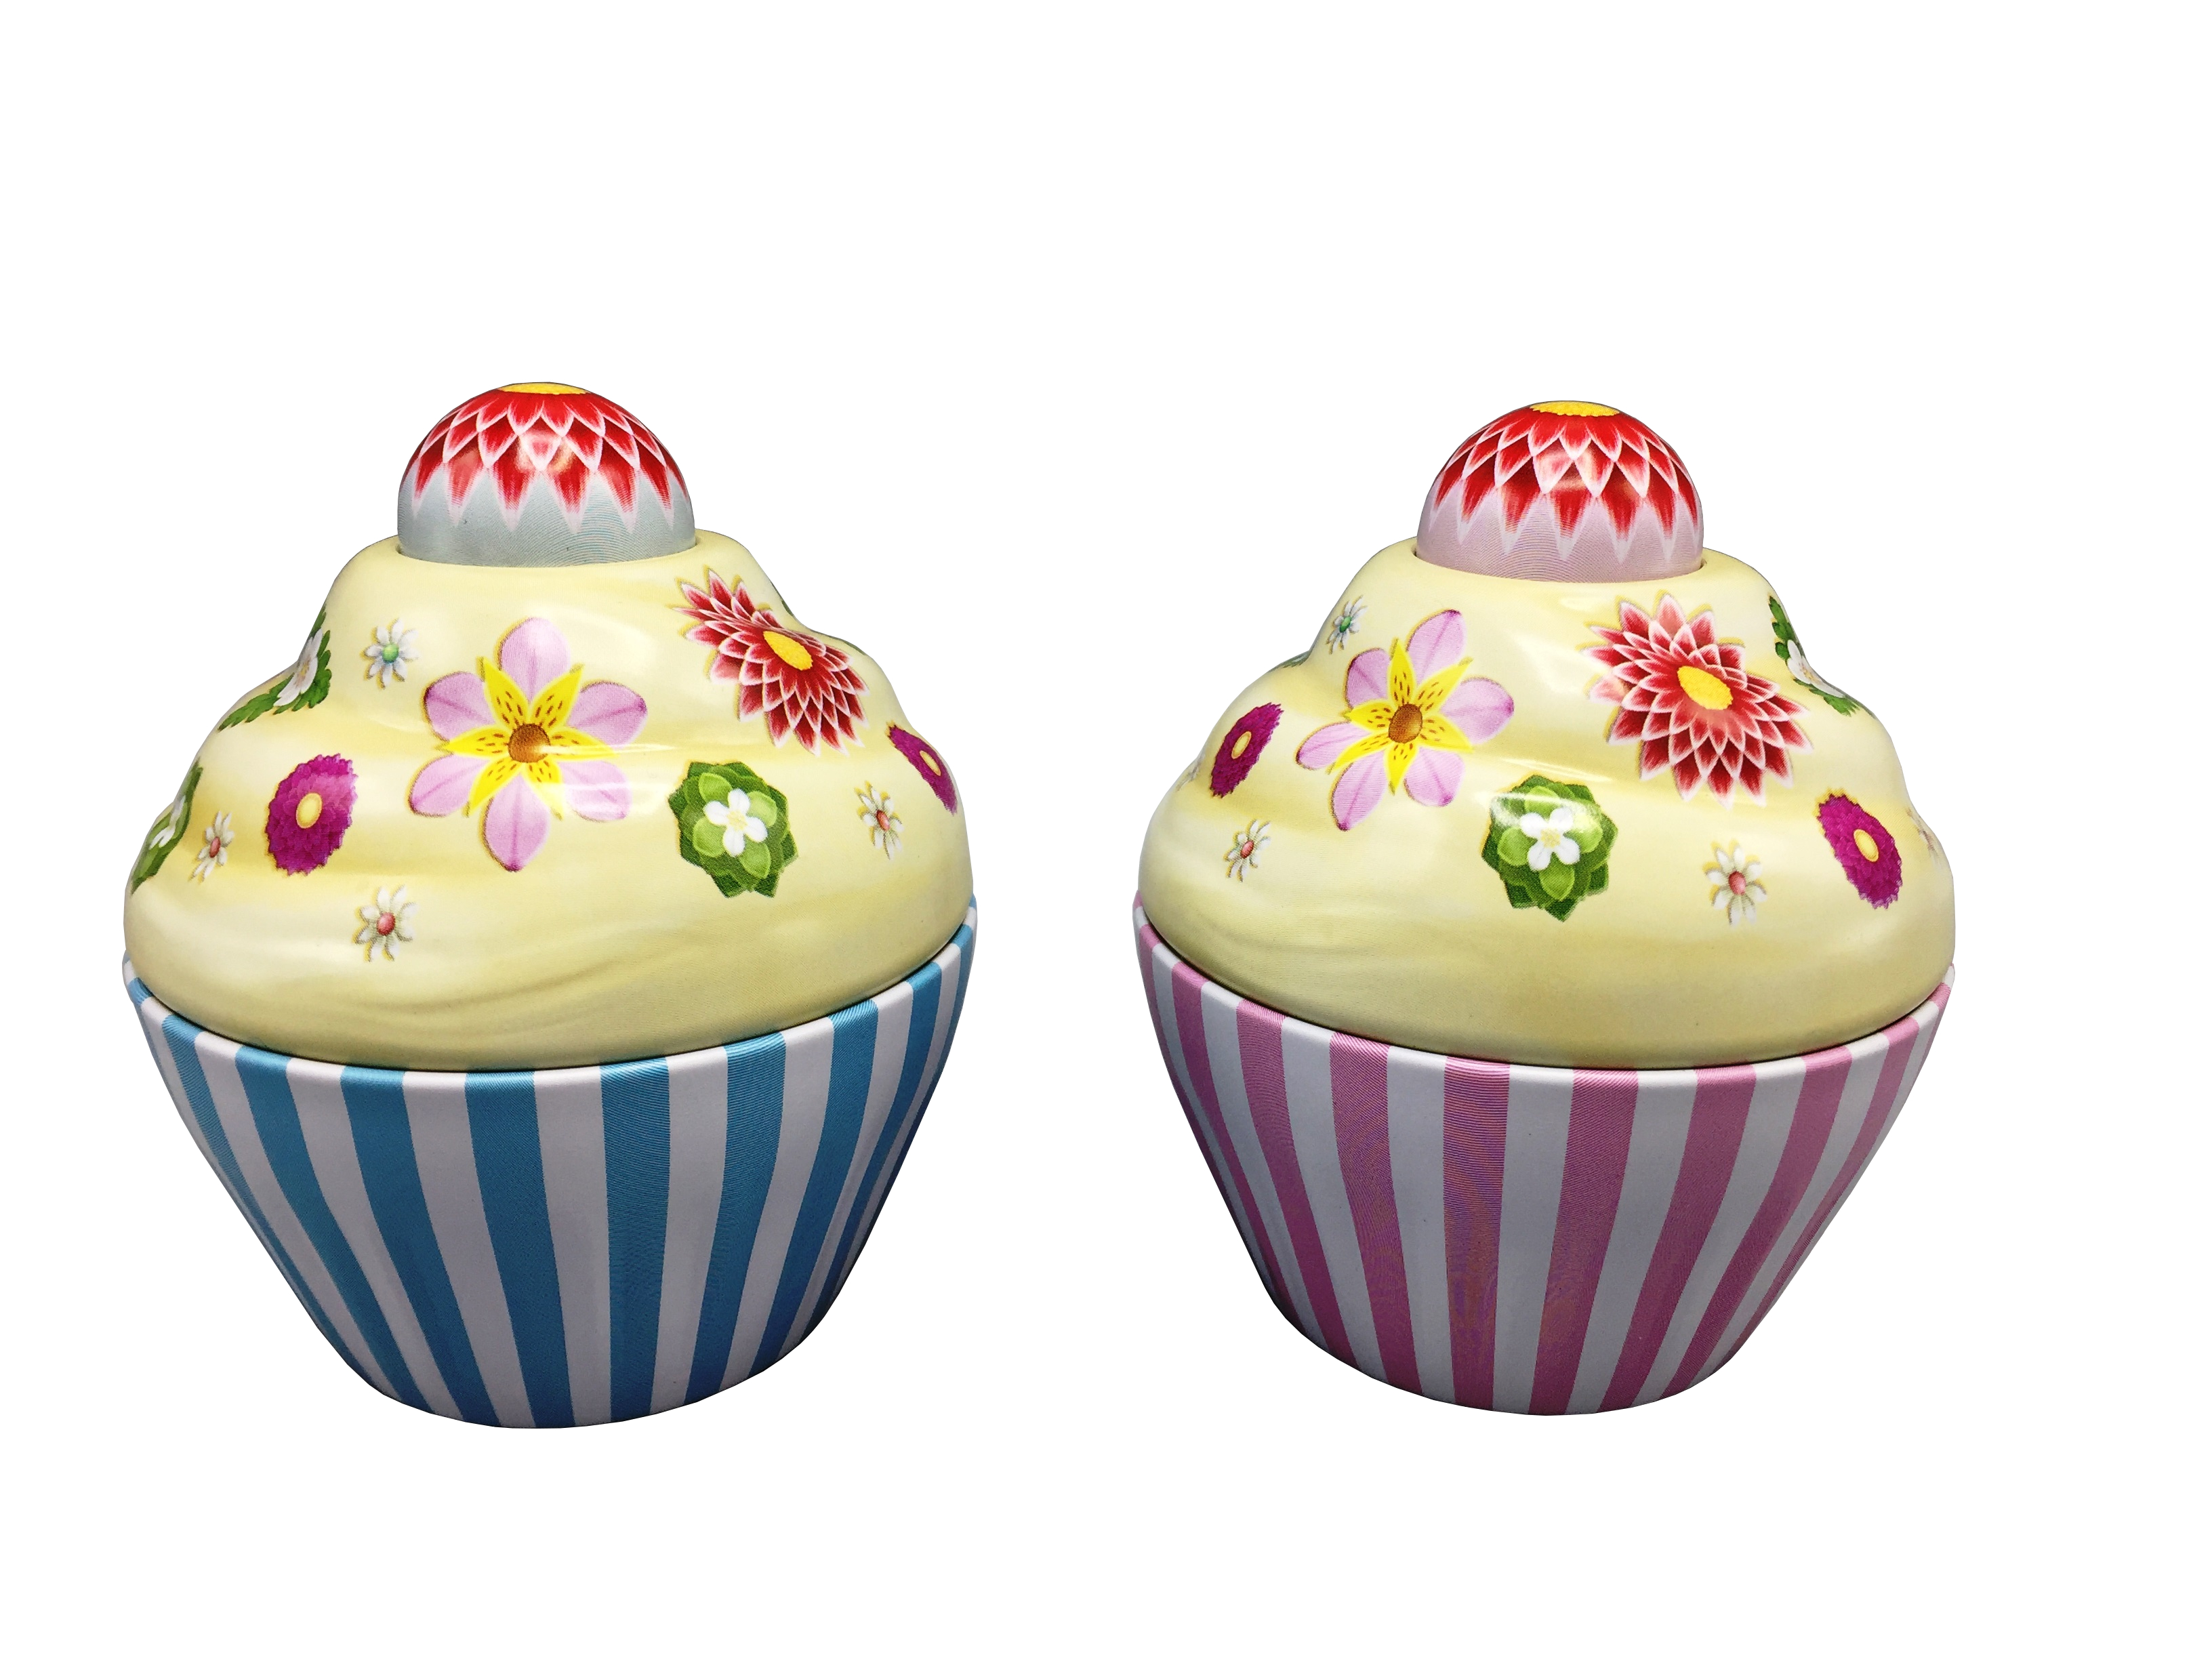 10210 Cupcake piccoli Happy Flower